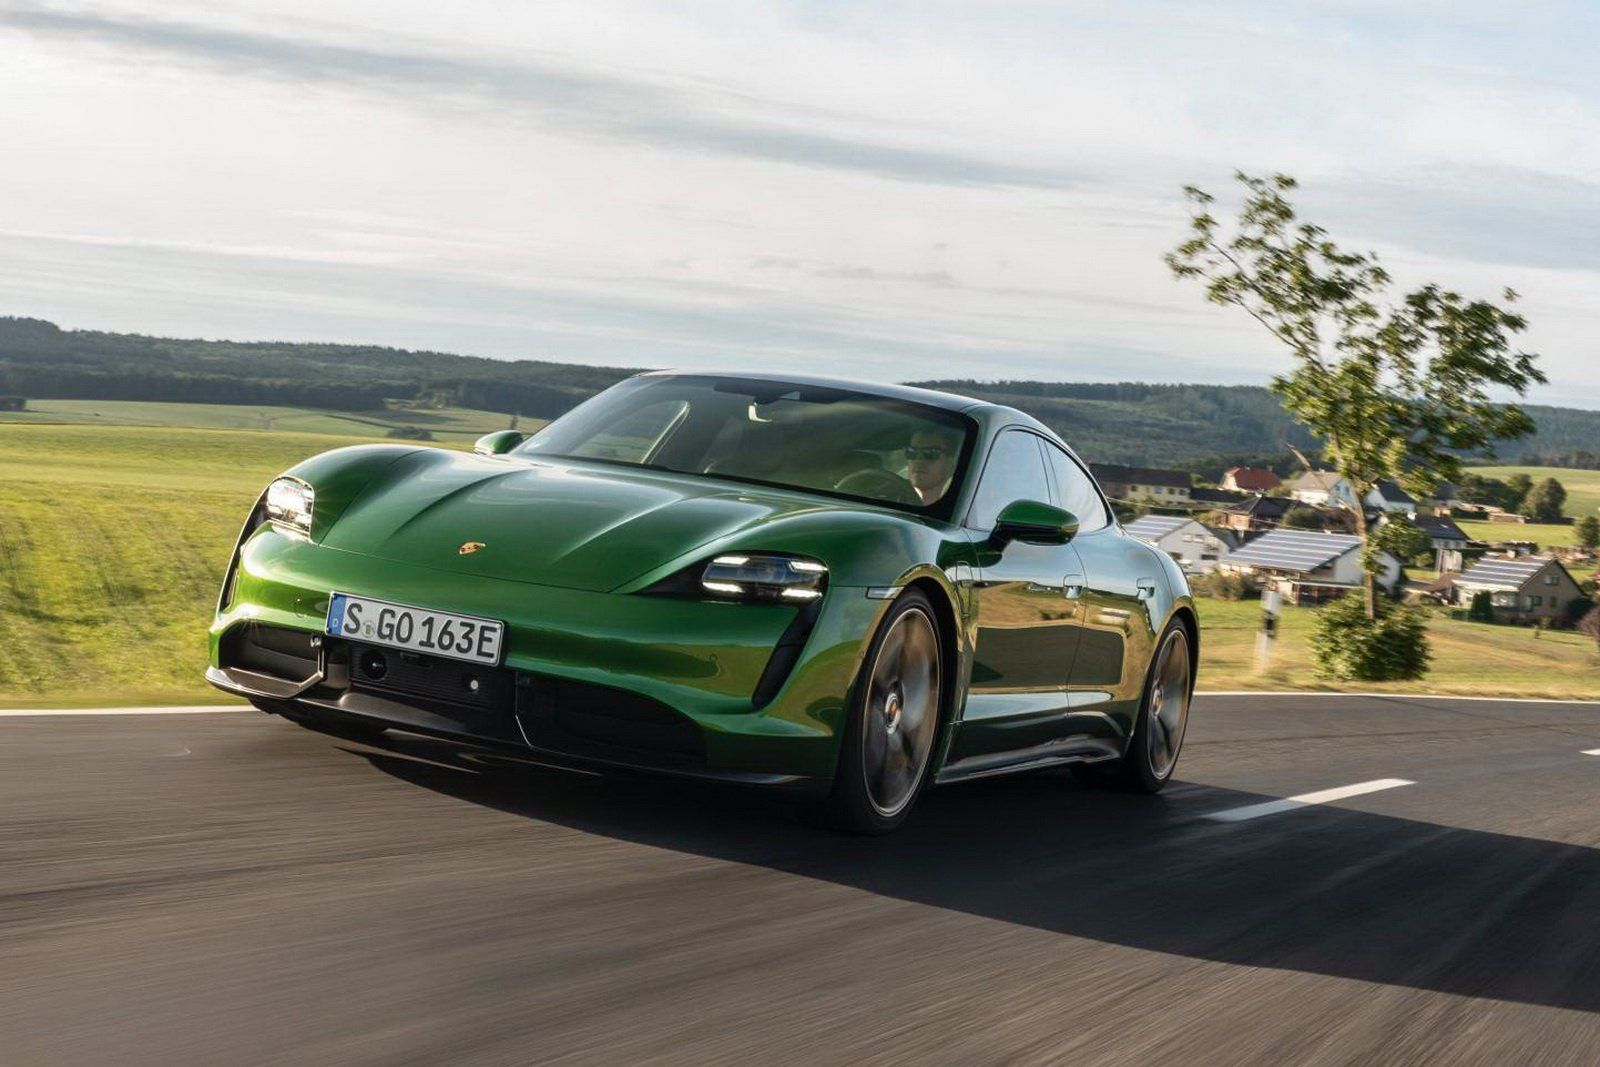 About The Nürburgring The 2020 Porsche Taycan